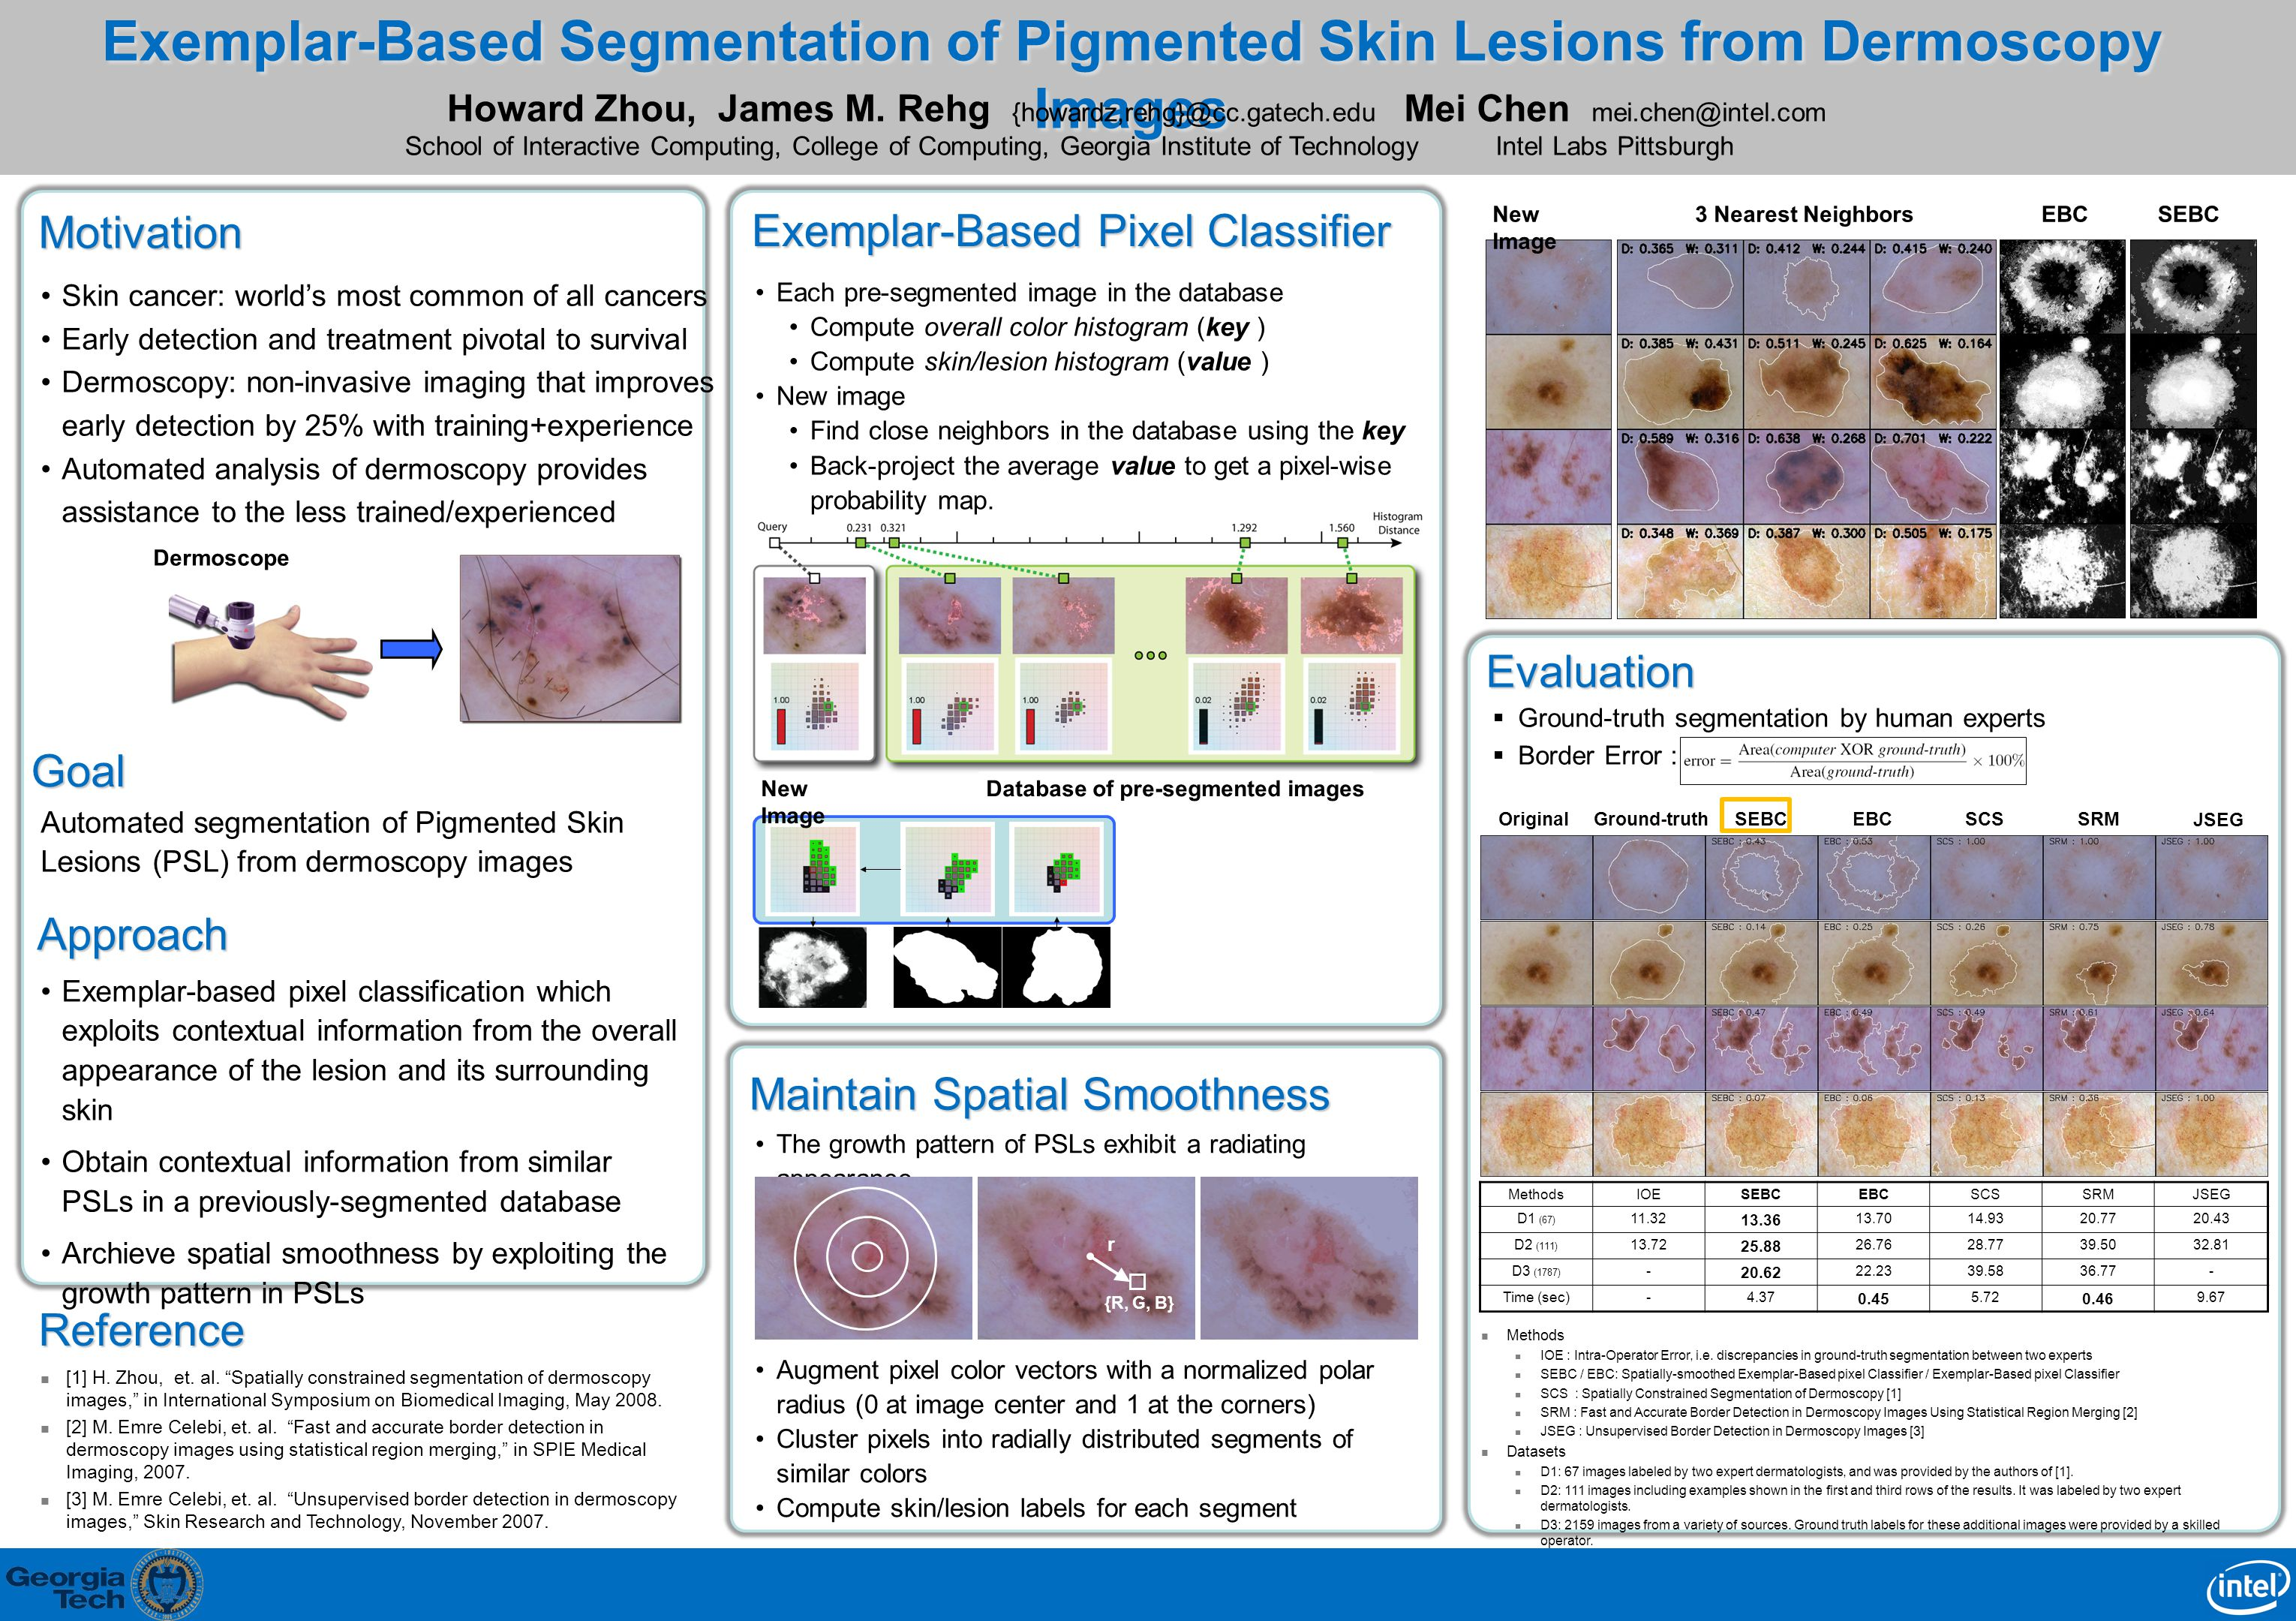 Exemplar-Based Segmentation of Pigmented Skin Lesions from Dermoscopy Images Mei Chen mei.chen@intel.com Intel Labs Pittsburgh Approach Motivation Skin cancer: world's most common of all cancers Early detection and treatment pivotal to survival Dermoscopy: non-invasive imaging that improves early detection by 25% with training+experience Automated analysis of dermoscopy provides assistance to the less trained/experienced MethodsIOESEBCEBCSCSSRMJSEG D1 (67) 11.32 13.36 13.7014.9320.7720.43 D2 (111) 13.72 25.88 26.7628.7739.5032.81 D3 (1787) - 20.62 22.2339.5836.77- Time (sec)-4.37 0.45 5.72 0.46 9.67  Ground-truth segmentation by human experts  Border Error : Howard Zhou, James M.